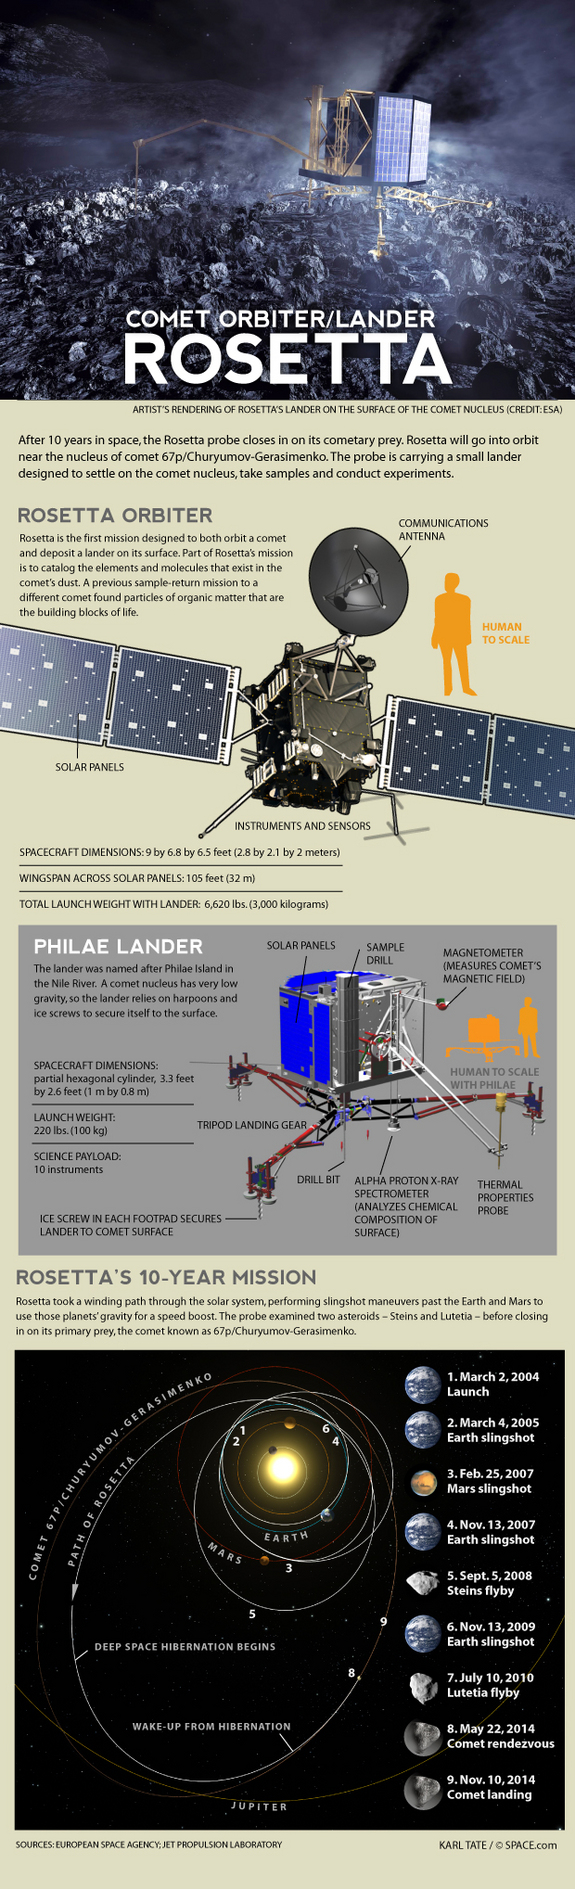 Rosetta spacecraft will orbit a comet and release a lander.